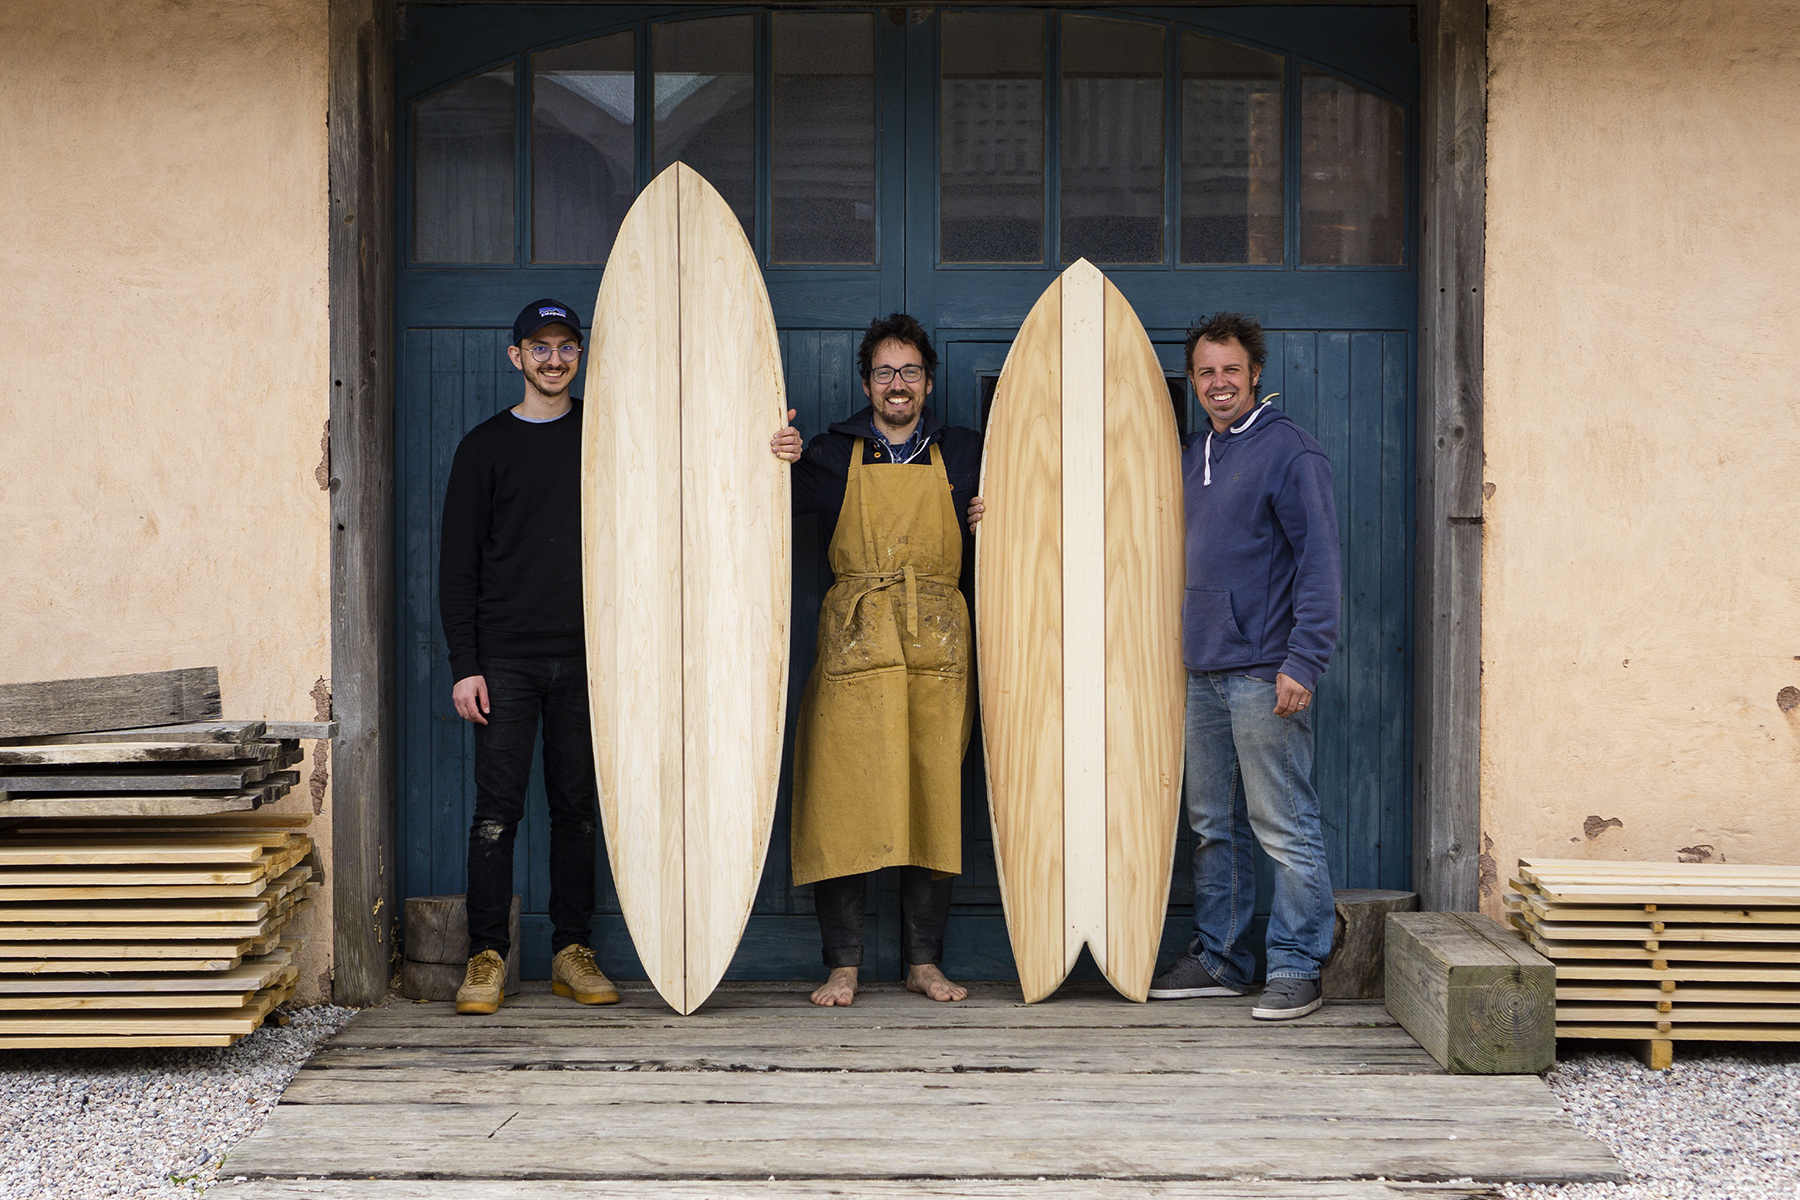 Otter Surfboards Wooden Surfboard workshop experience may 2021 - Group shot - Phil James Chris